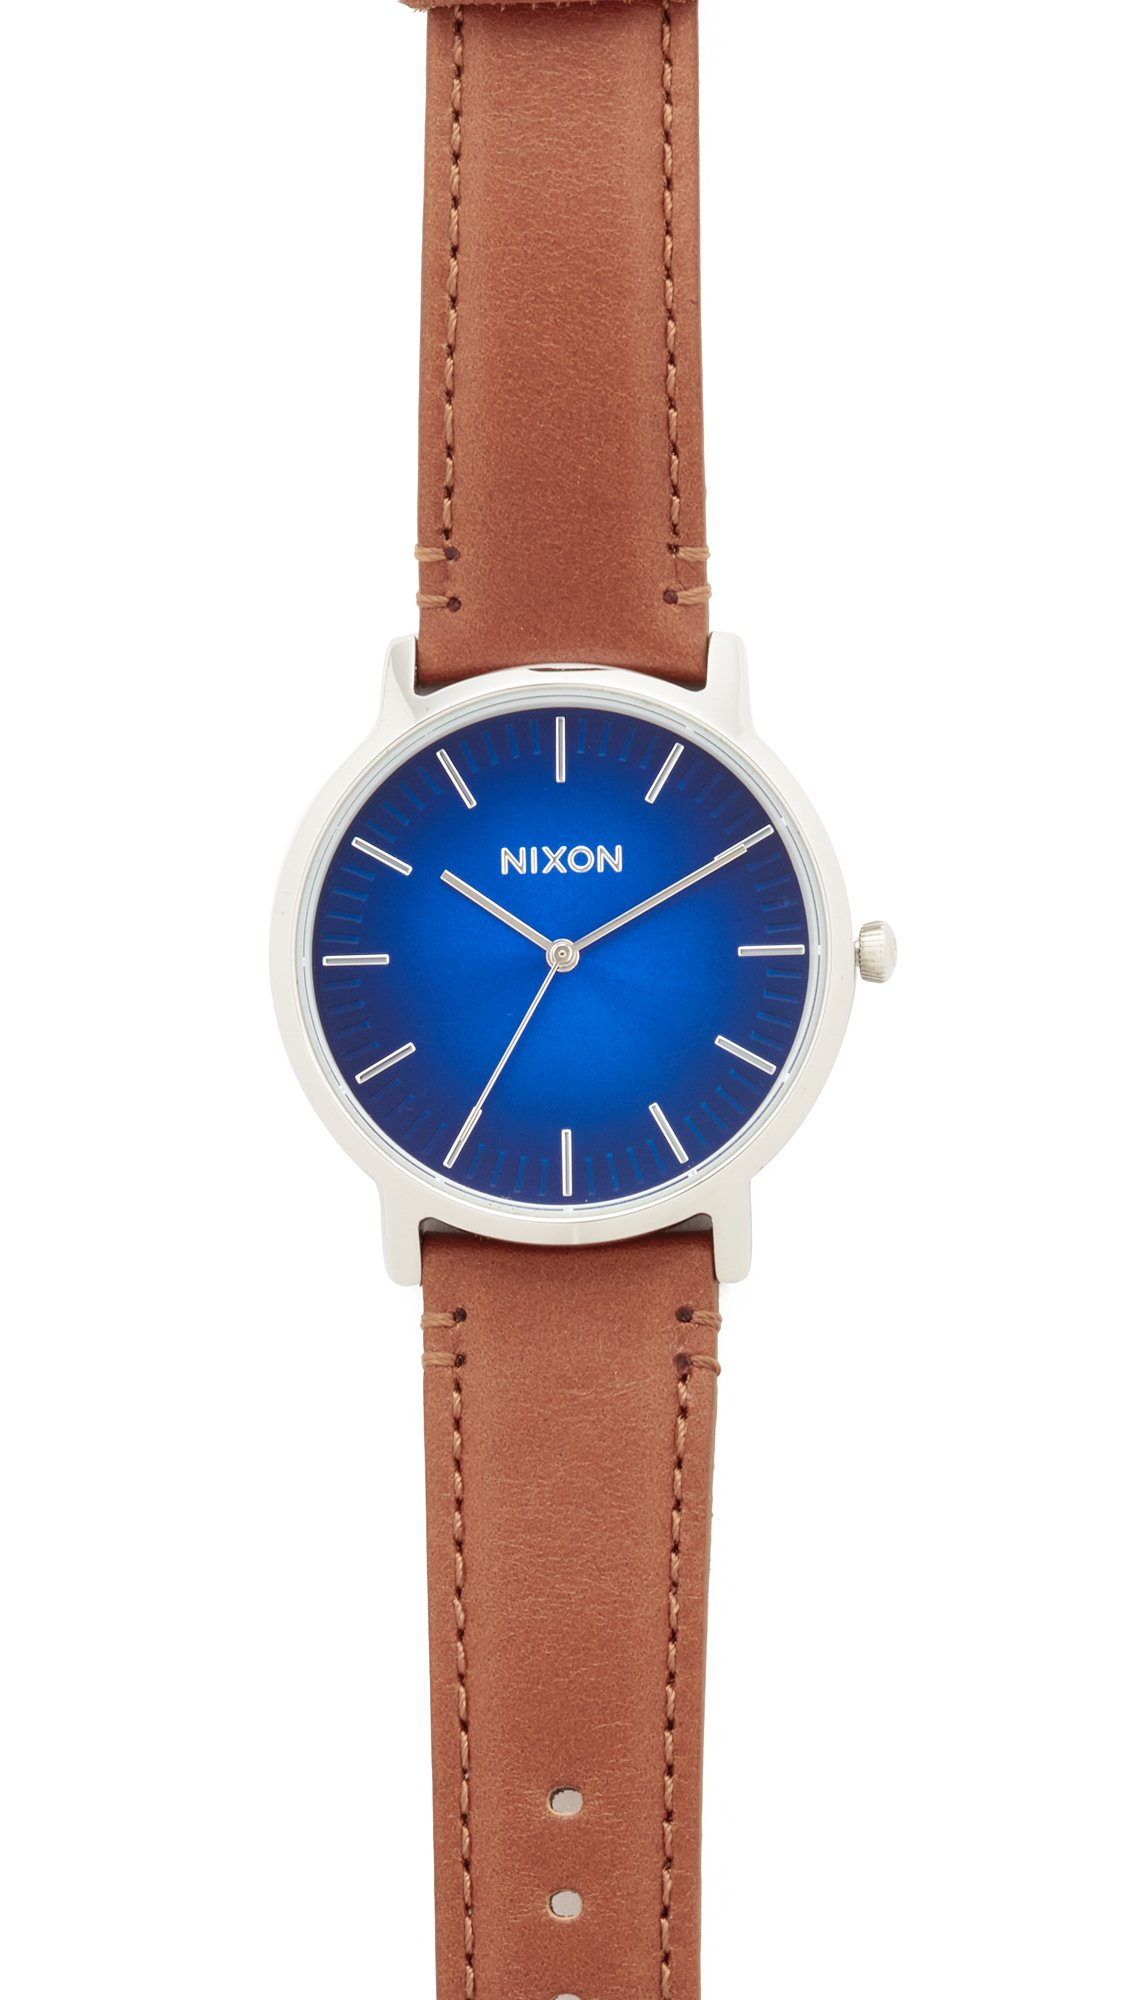 Nixon Men's The Porter Watch, Blue Ombre/Saddle, One Size